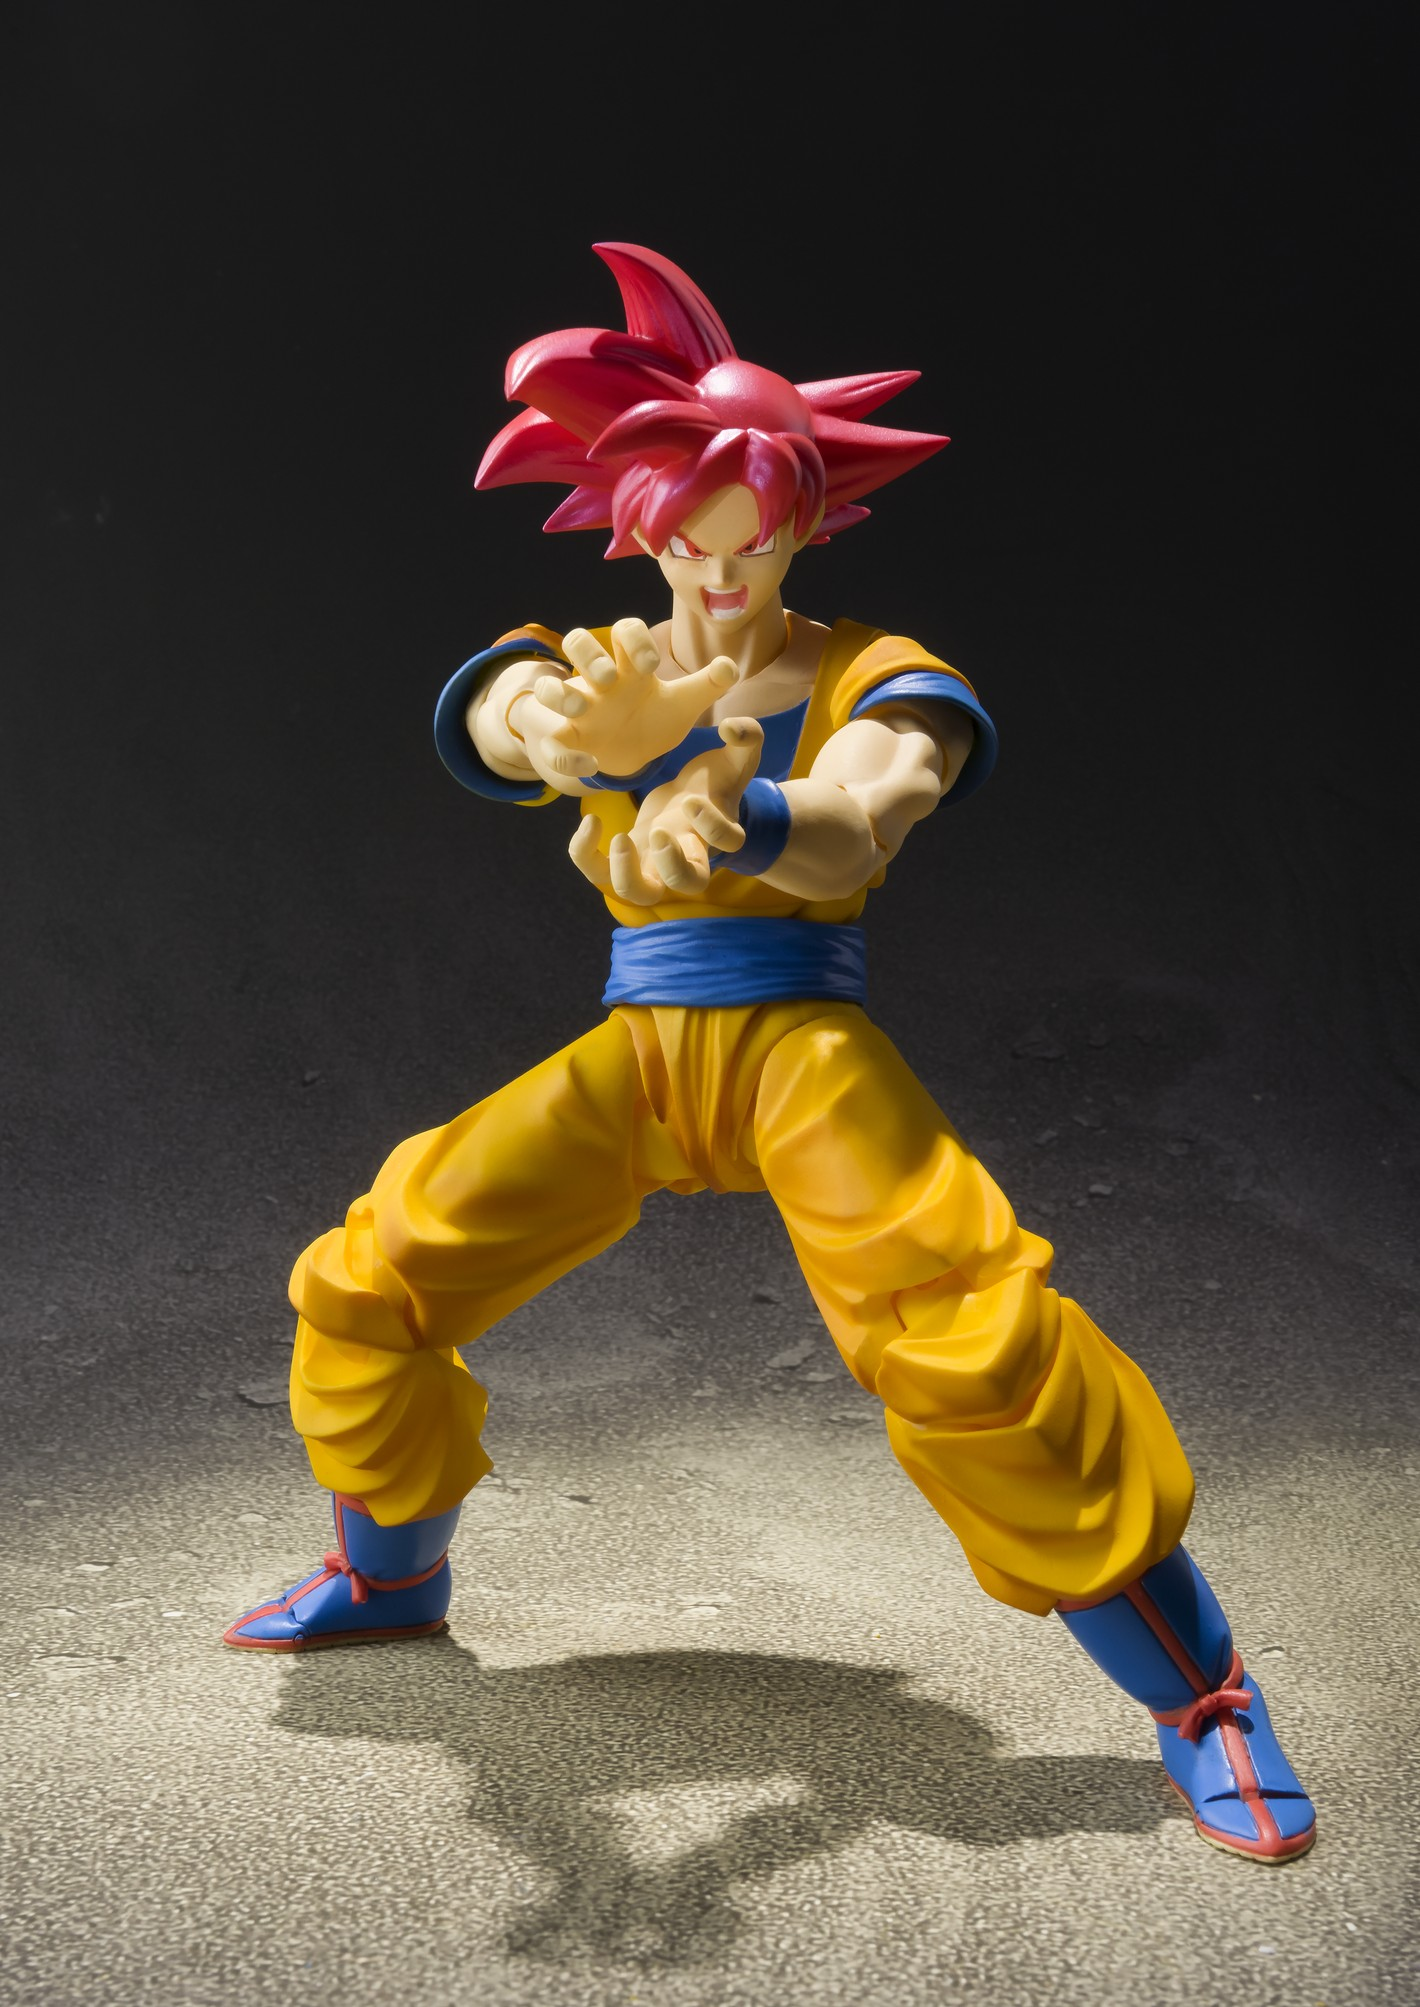 bandai tamashii nations dragon ball z super saiyan goku - HD 849×1200